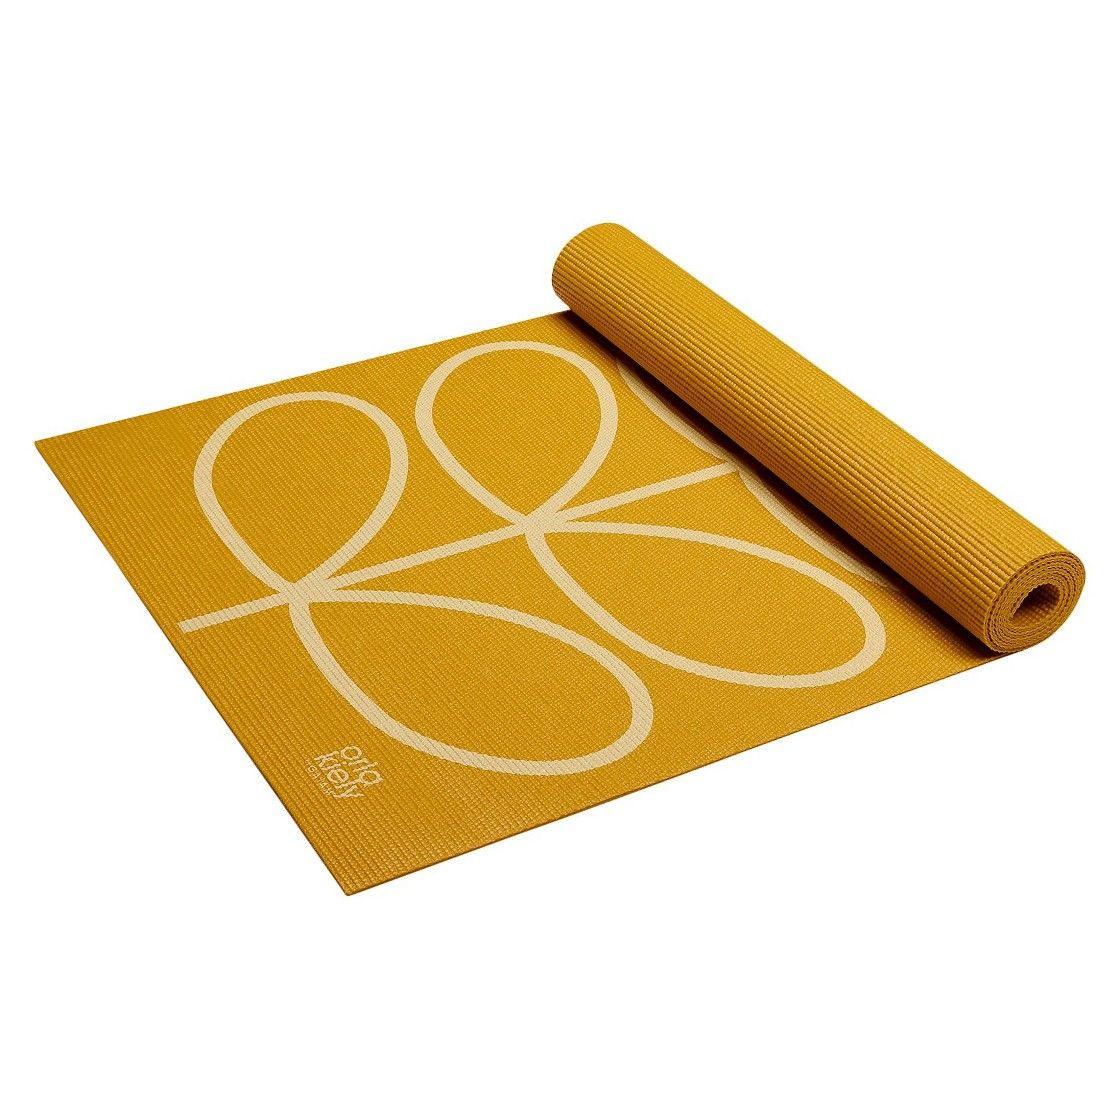 107c8391e742 Orla Kiely by Gaiam Linear Stem Sunflower Yoga Mat- Yellow (3mm) at Target